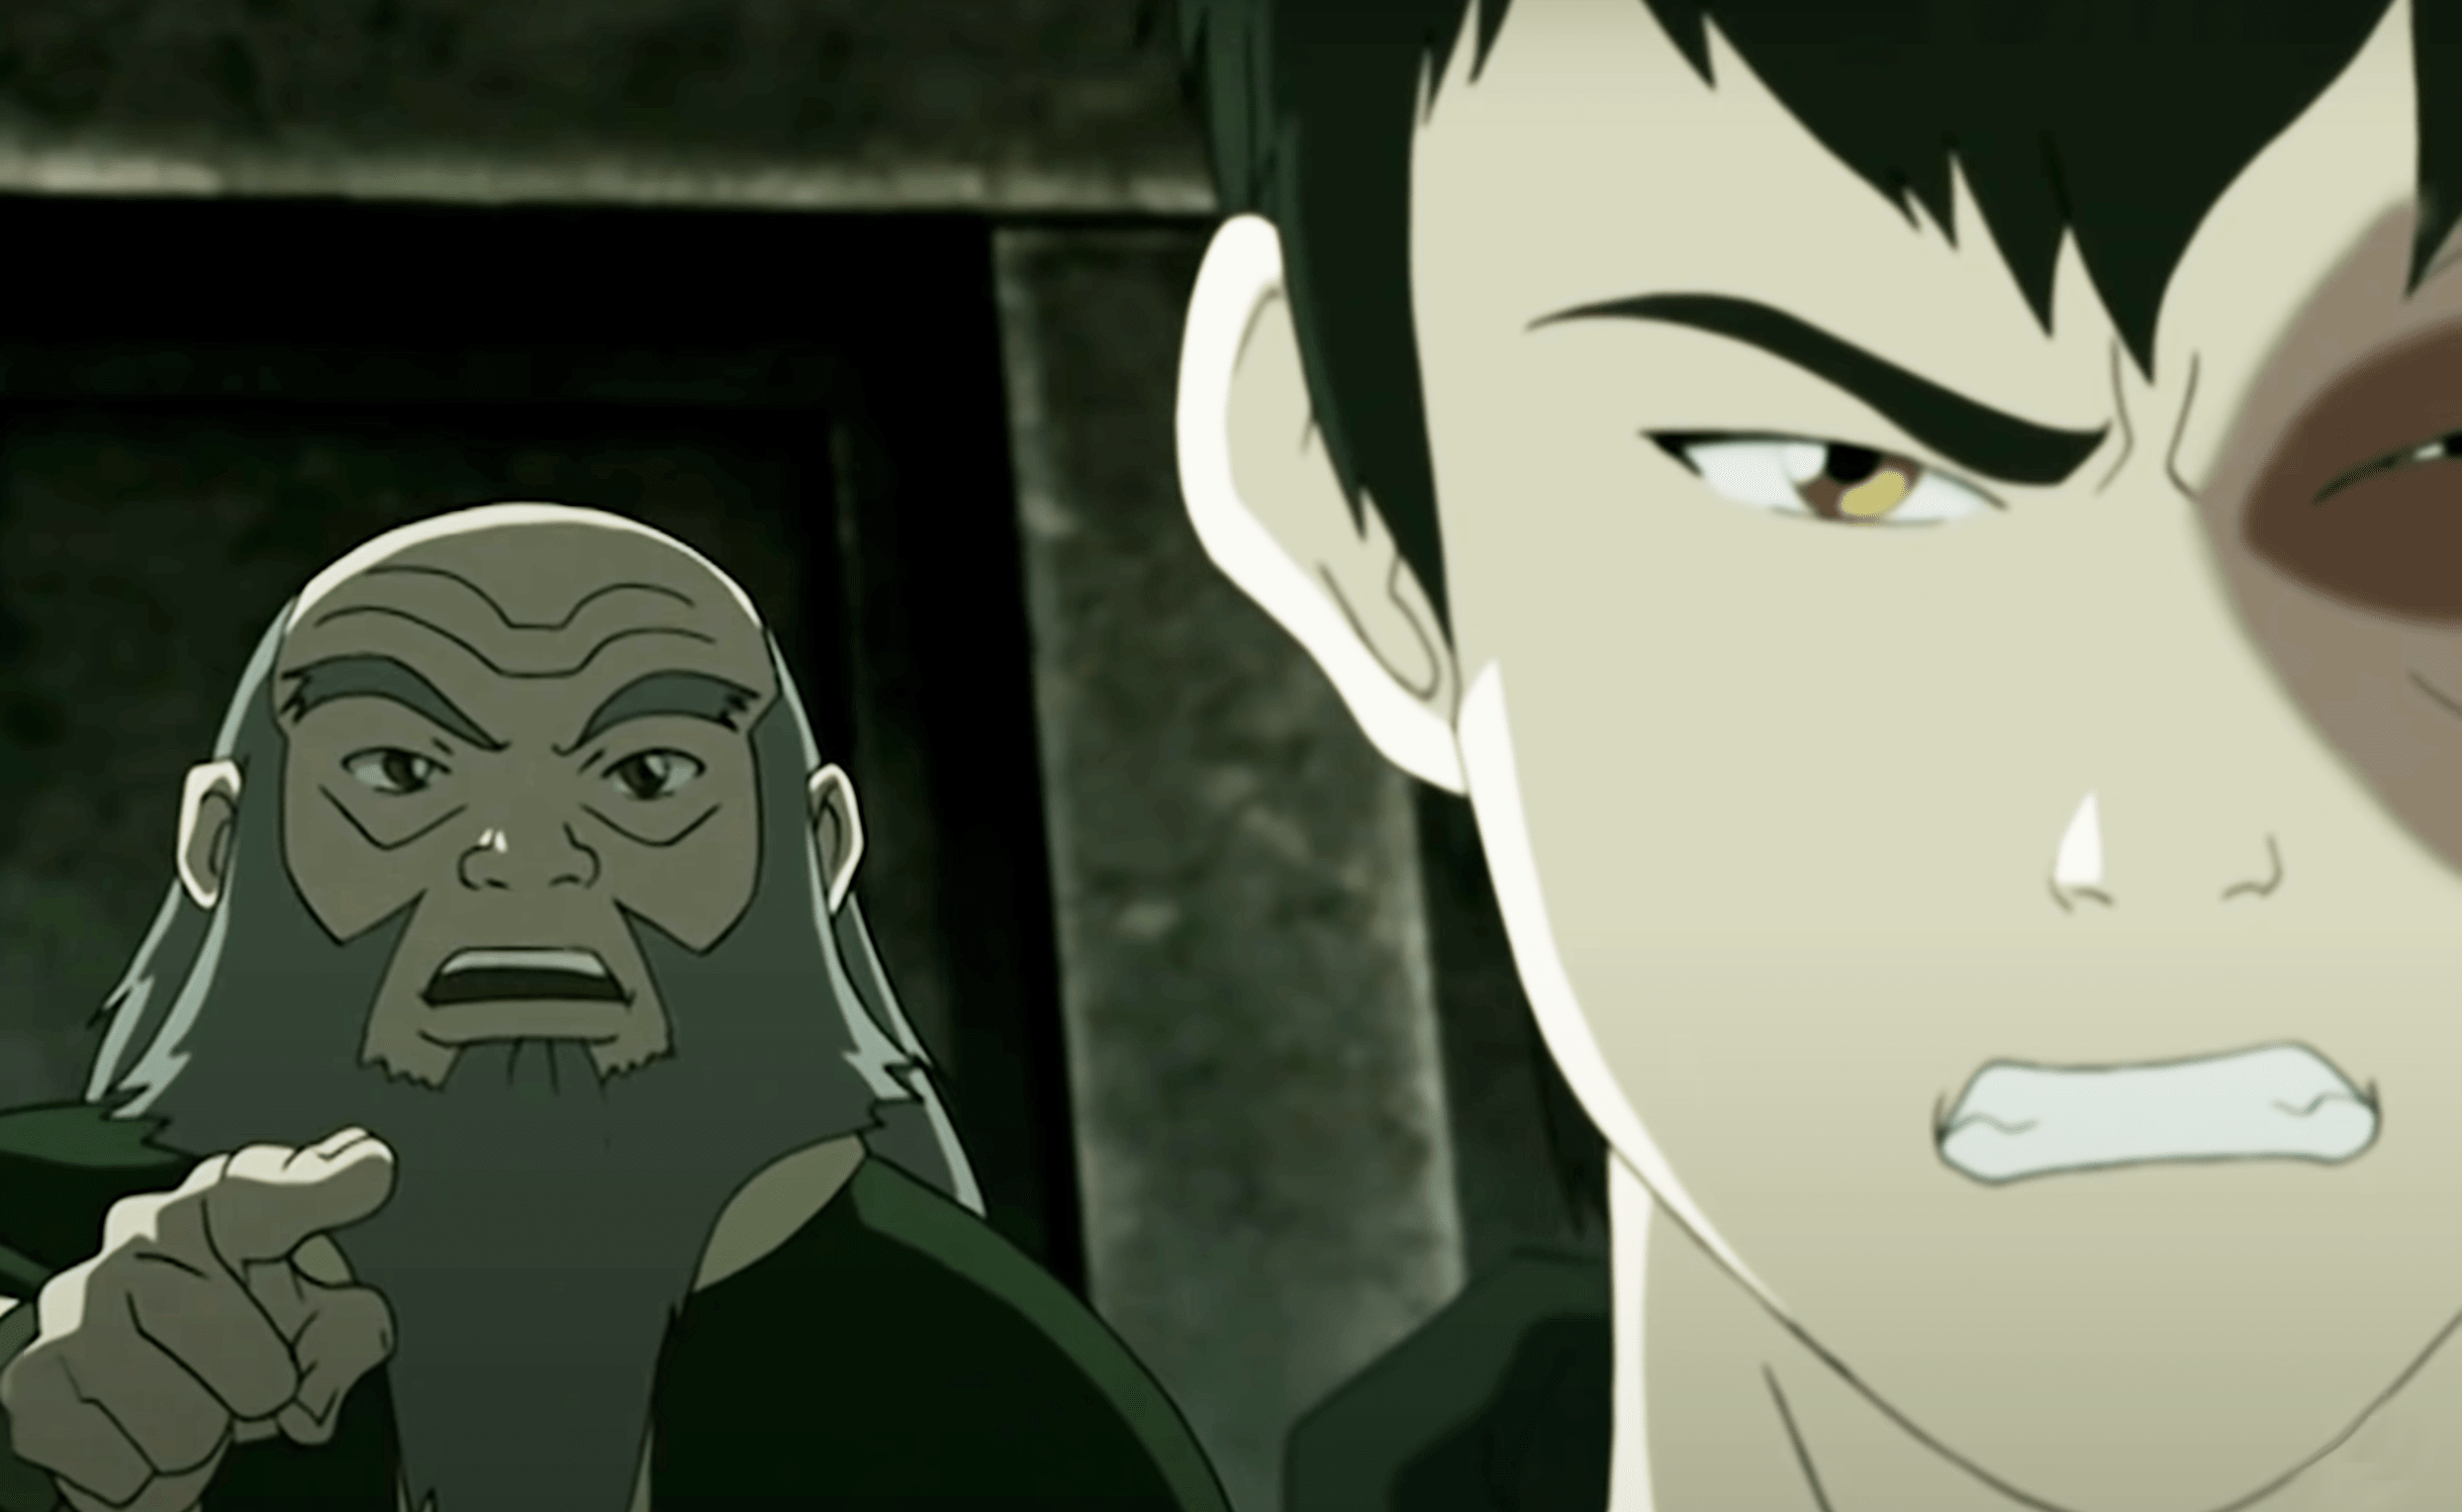 Iroh speaking with tough love to Zuko who is planning on doing something he feels pressured to do